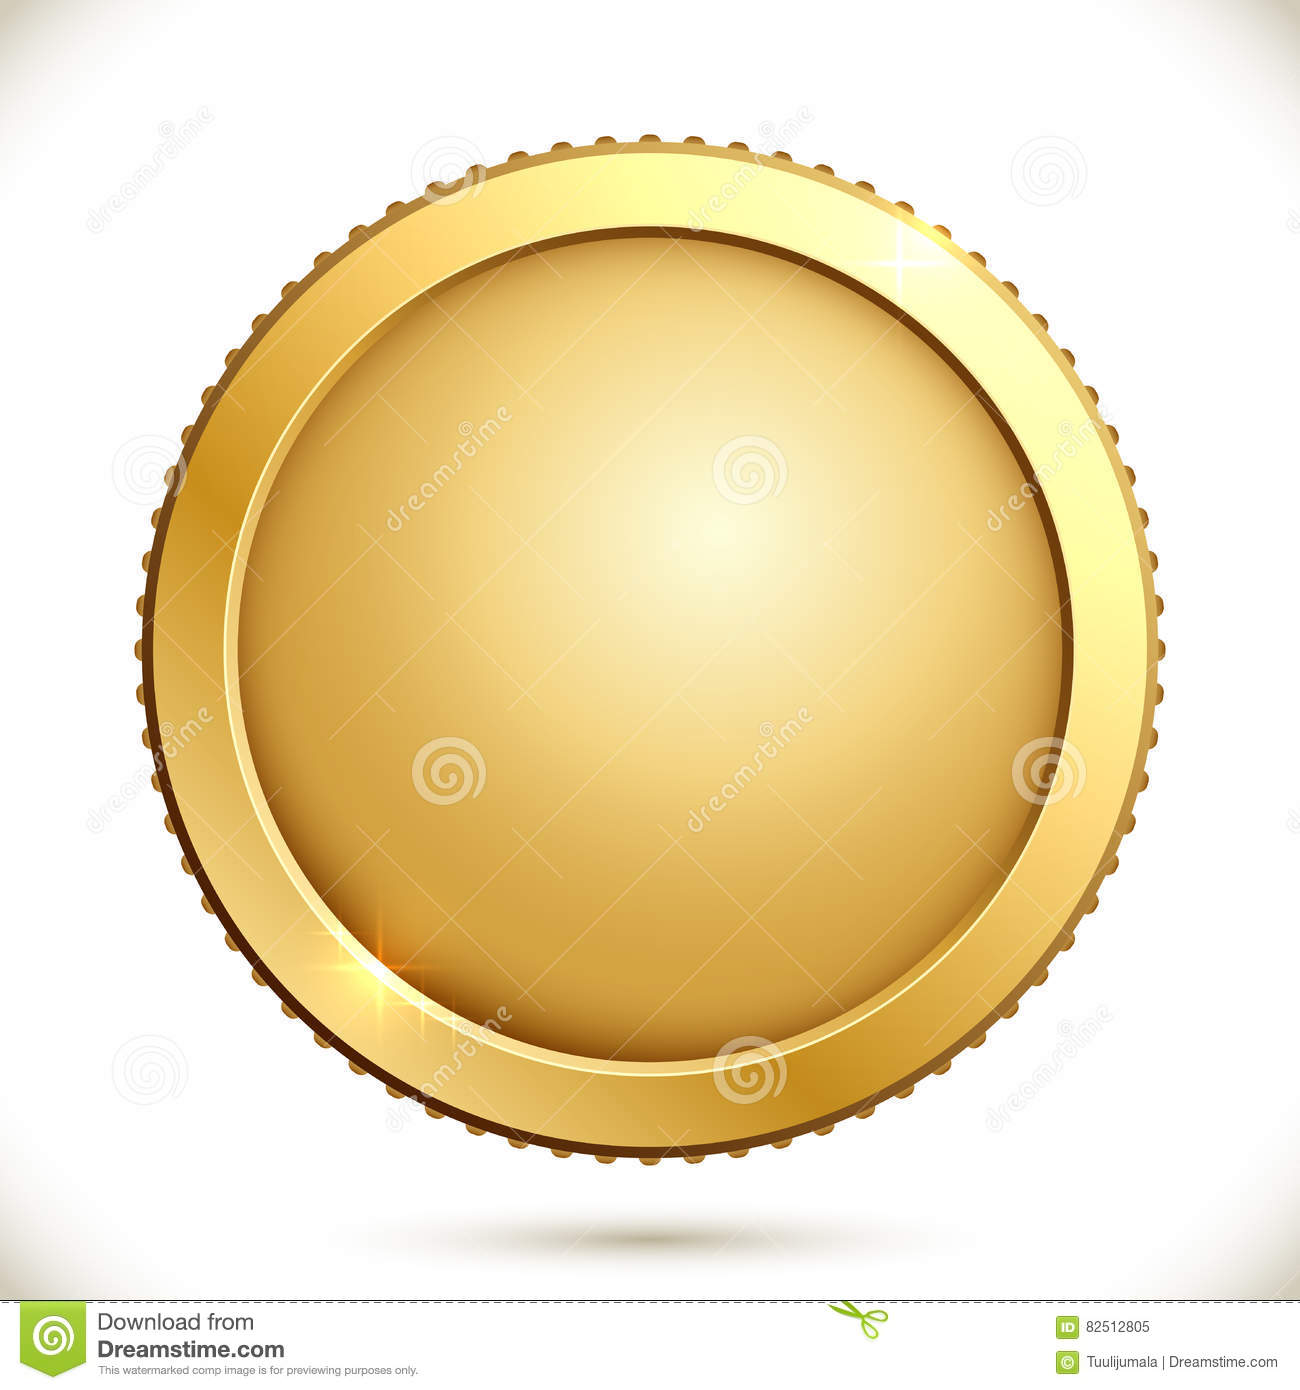 Shiny gold coin